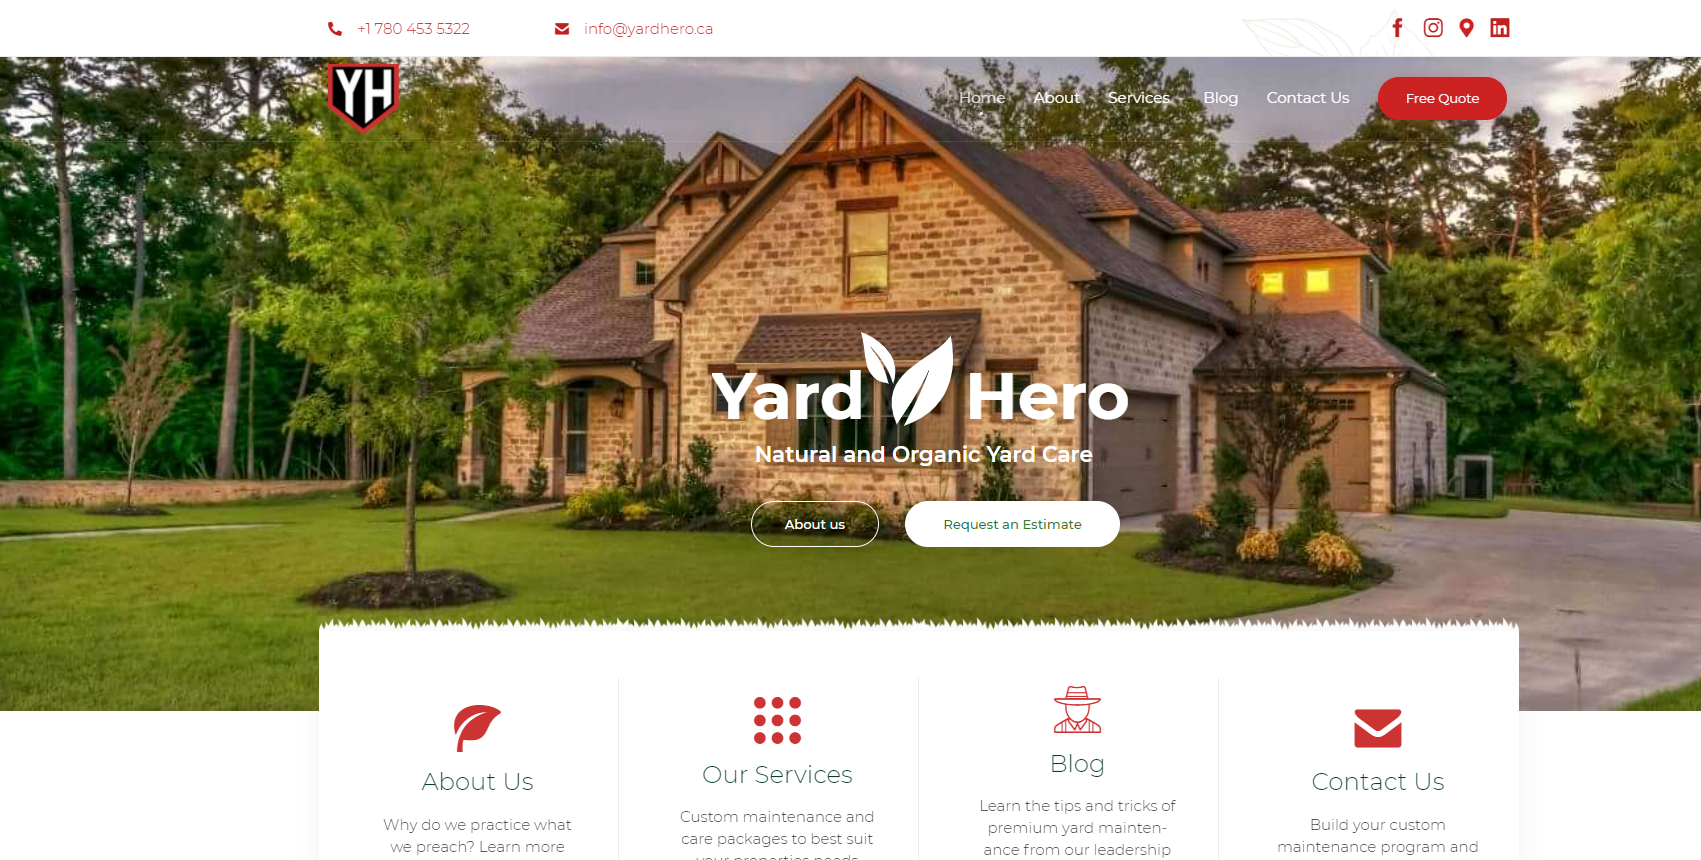 Introducing New Brand Yard Hero! Lawn Mowing and Snow Removal Services – February 2021 Updates